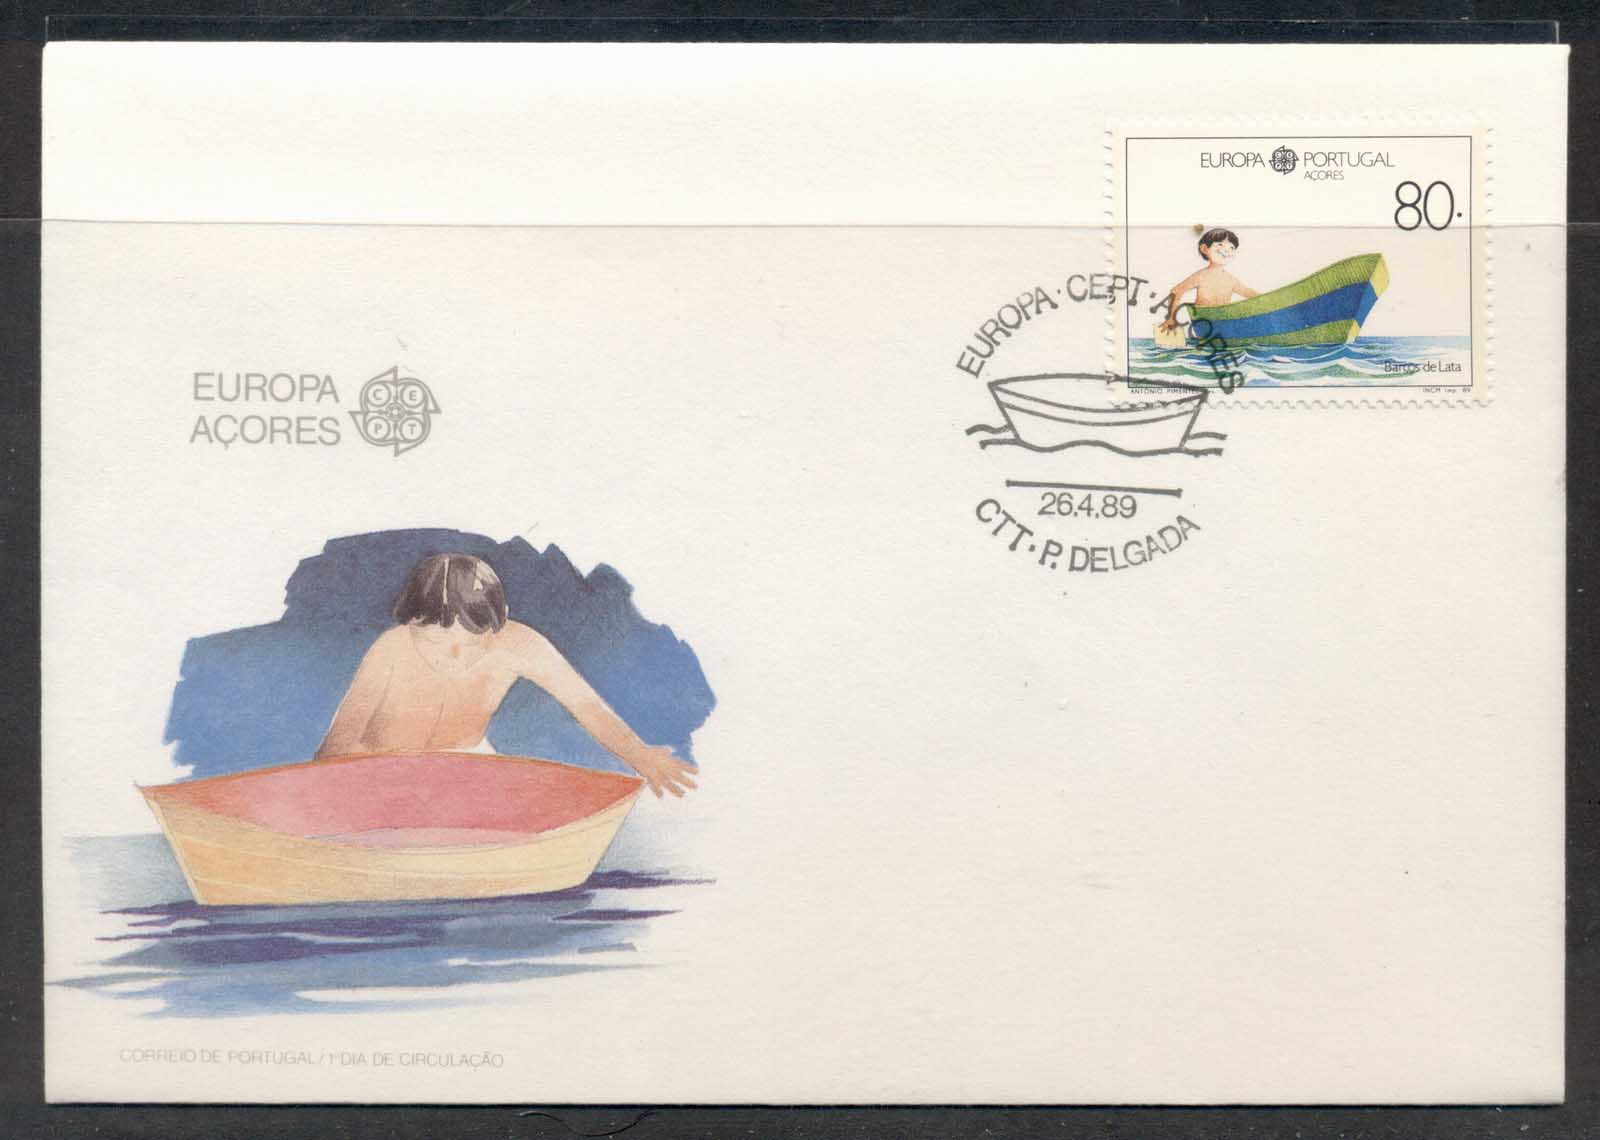 Azores 1989 Europa Children's Play FDC